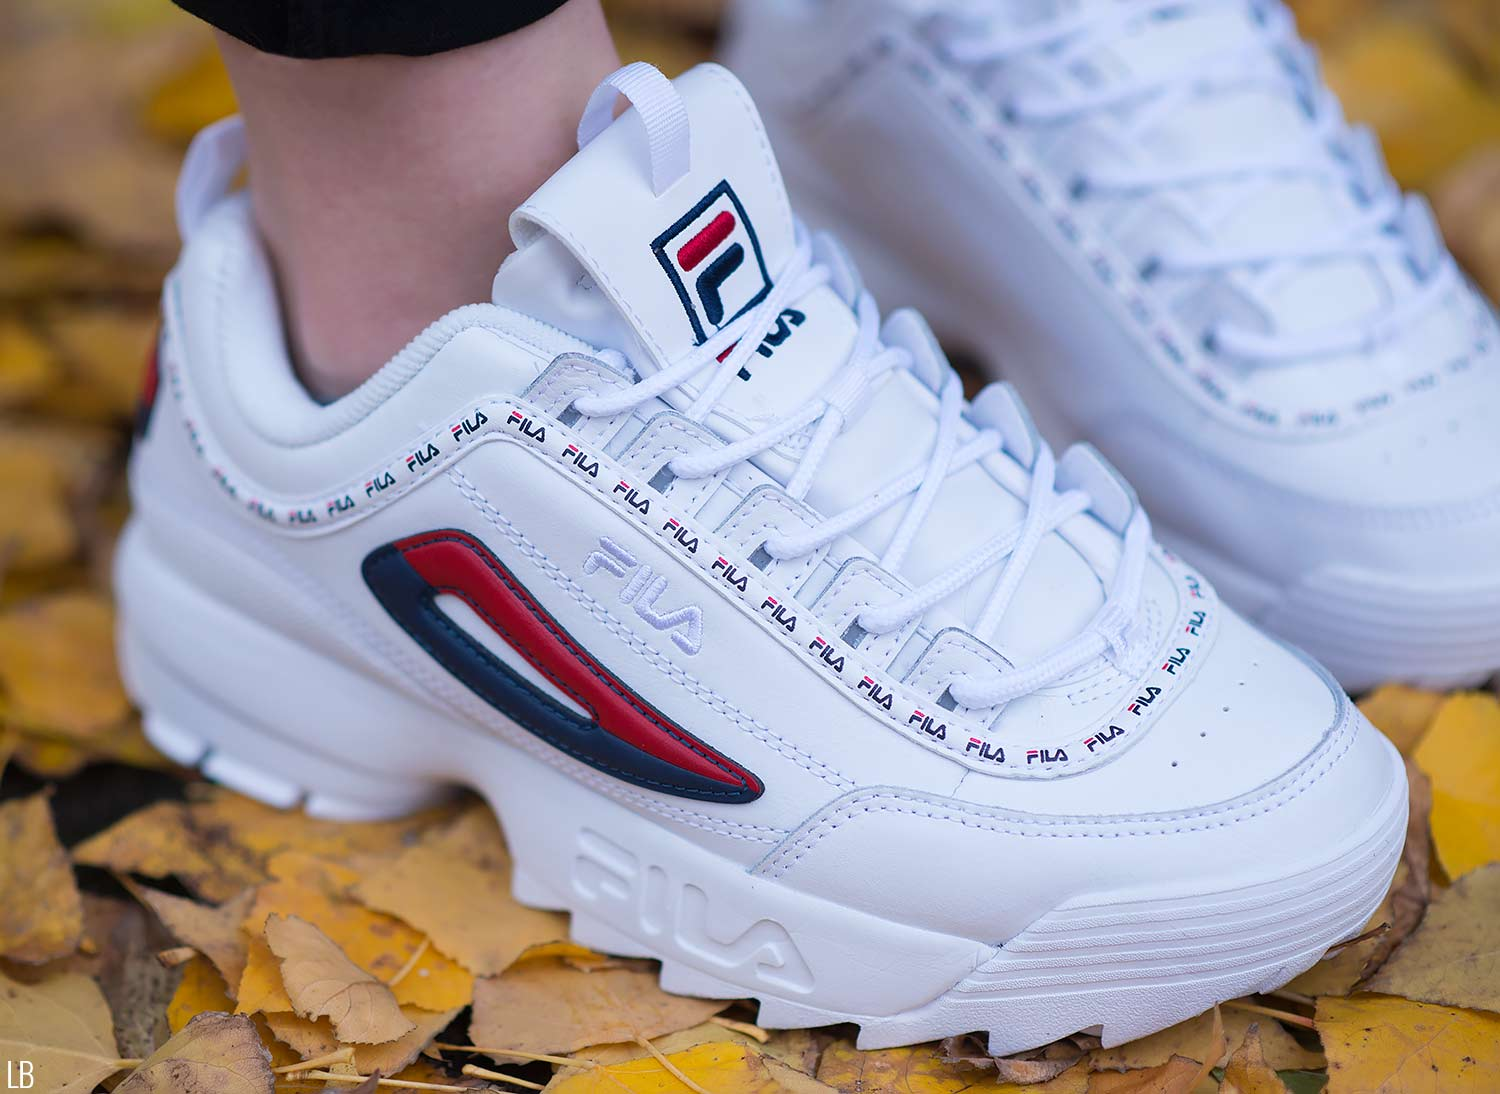 4e32fba0f Fila Disruptor II Trainers Review | Raindrops of Sapphire